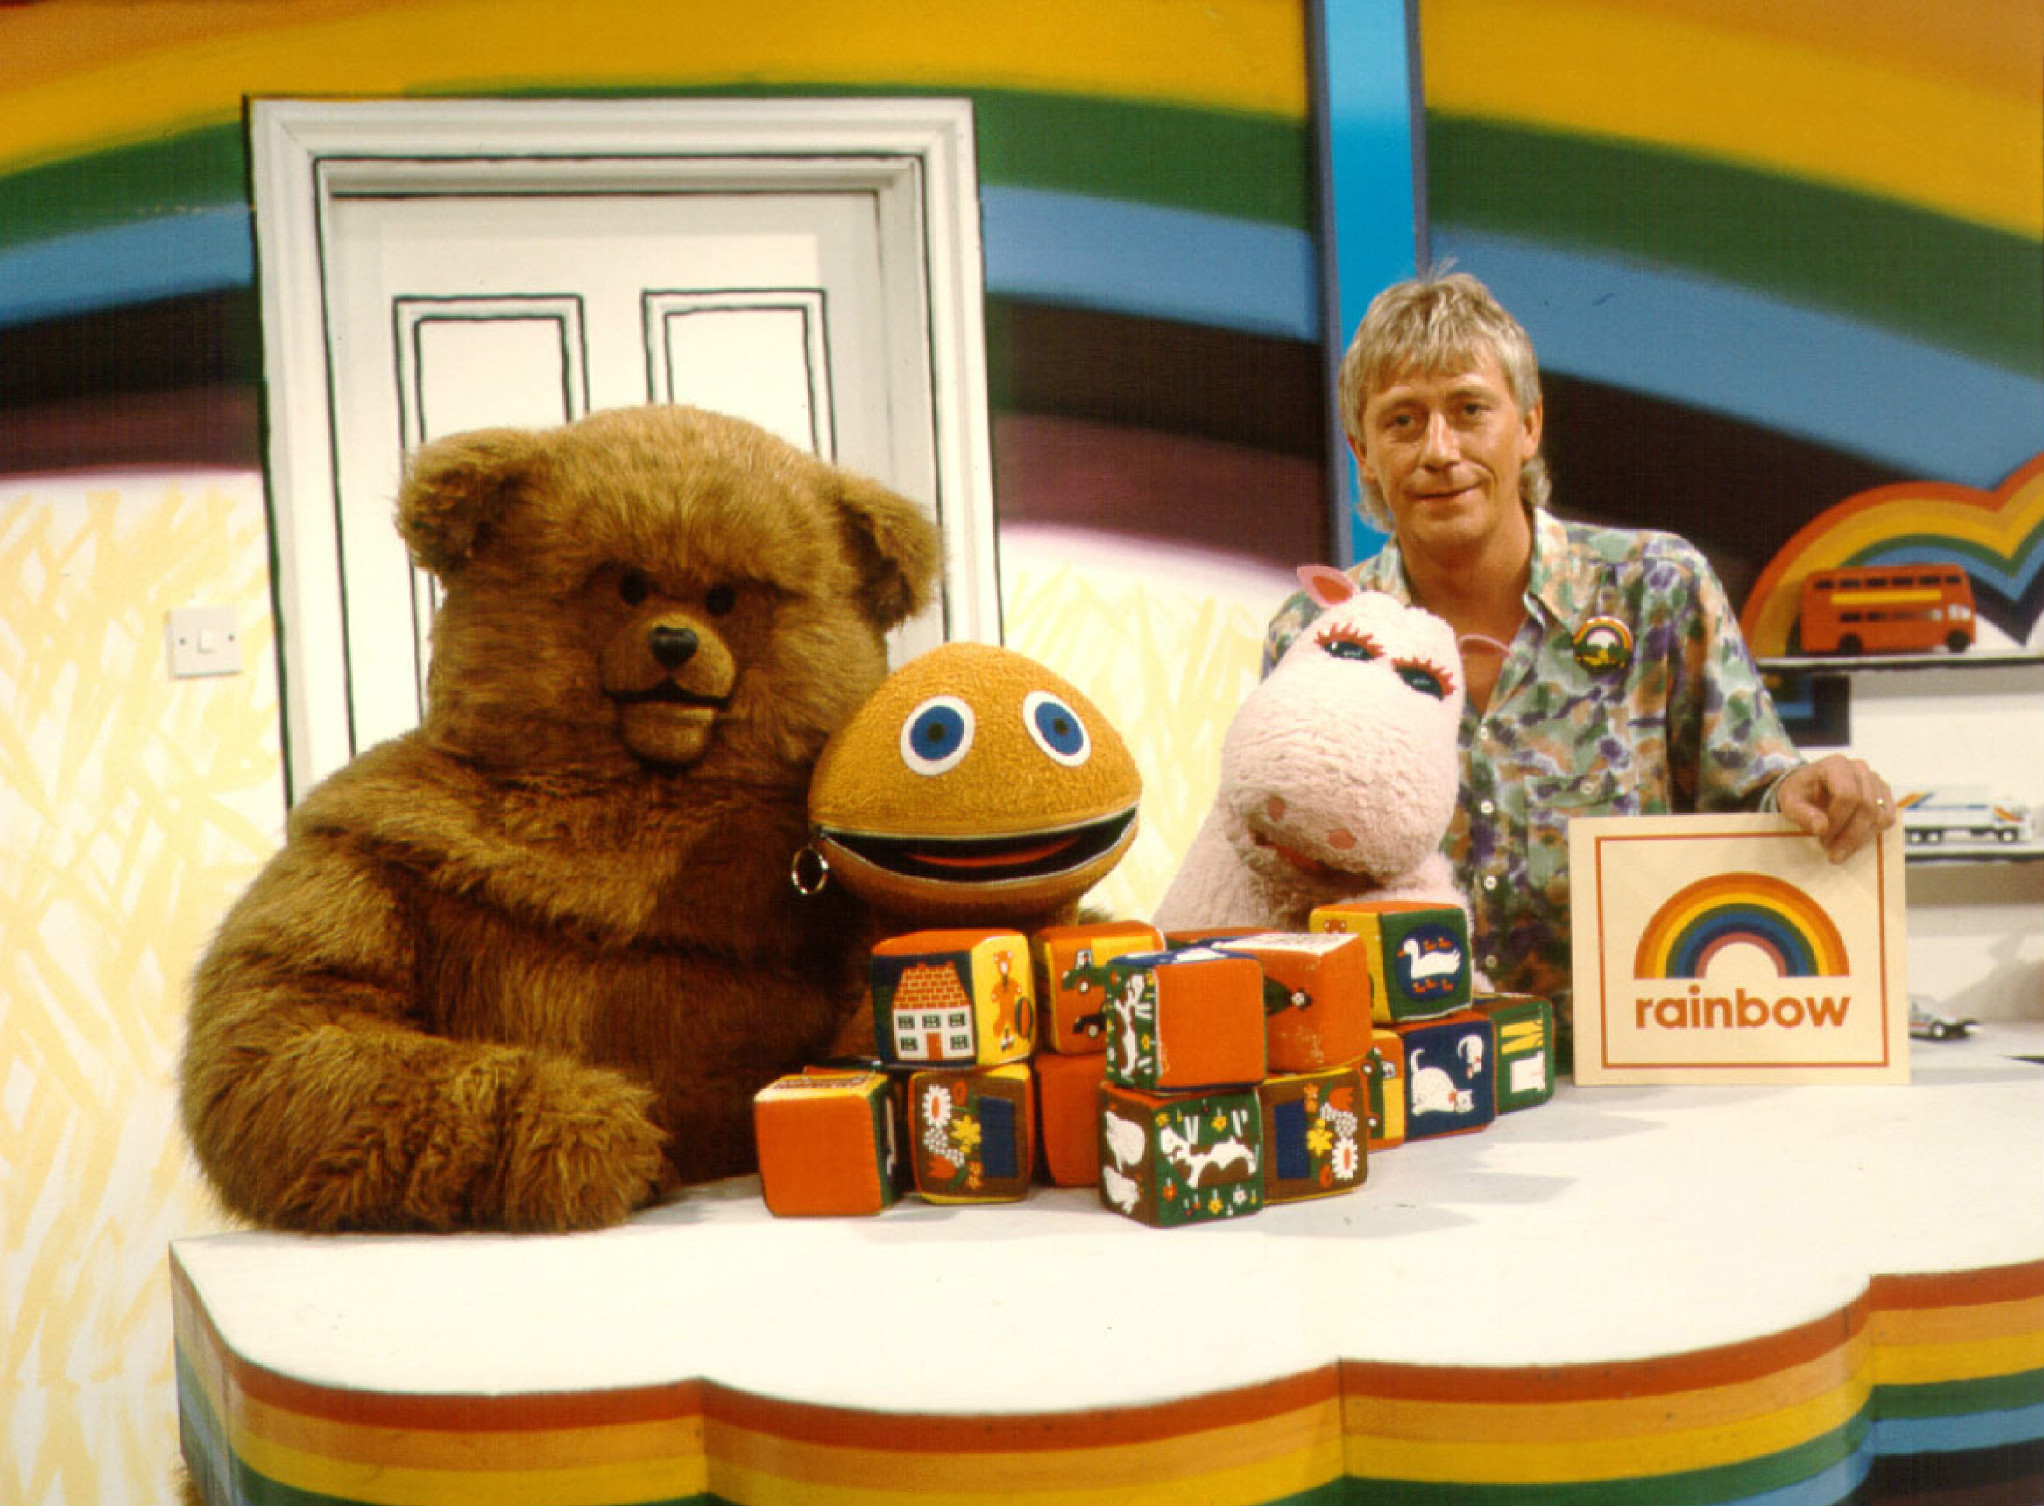 Eh Oh New Exhibition Celebrating Iconic Childrens Television At M Shed Bristol Bristol Mum